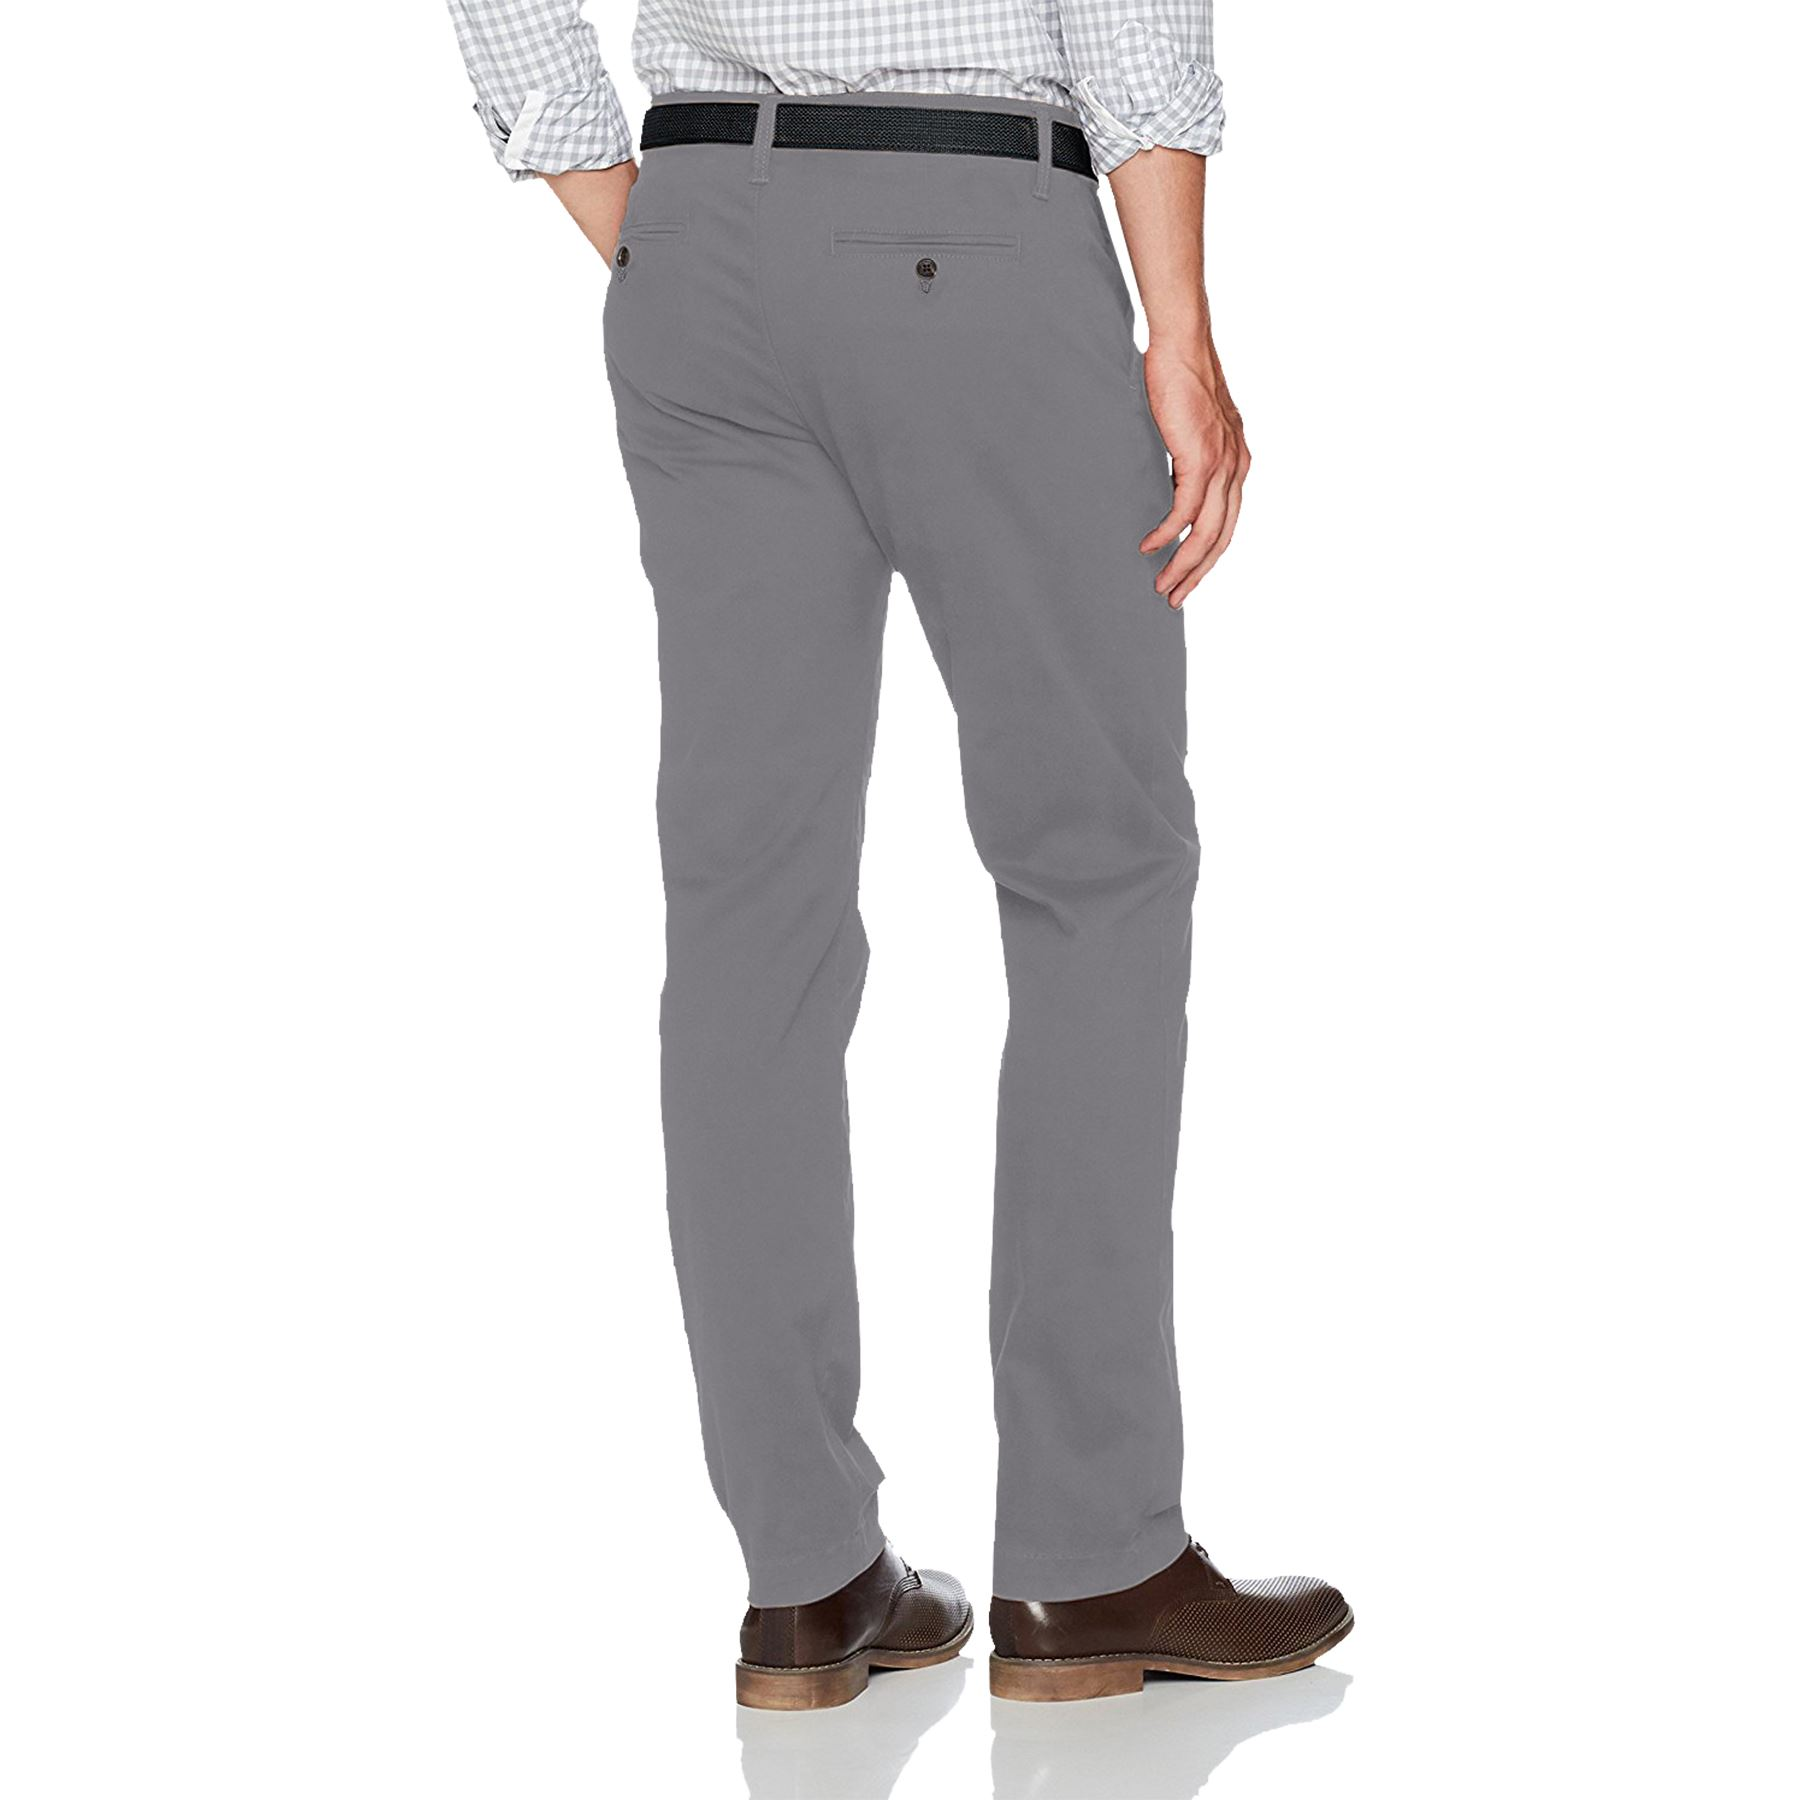 New-Mens-Ex-Store-Chino-Trousers-Regular-Fit-Straight-Cotton-Casual-Work-Pants thumbnail 7